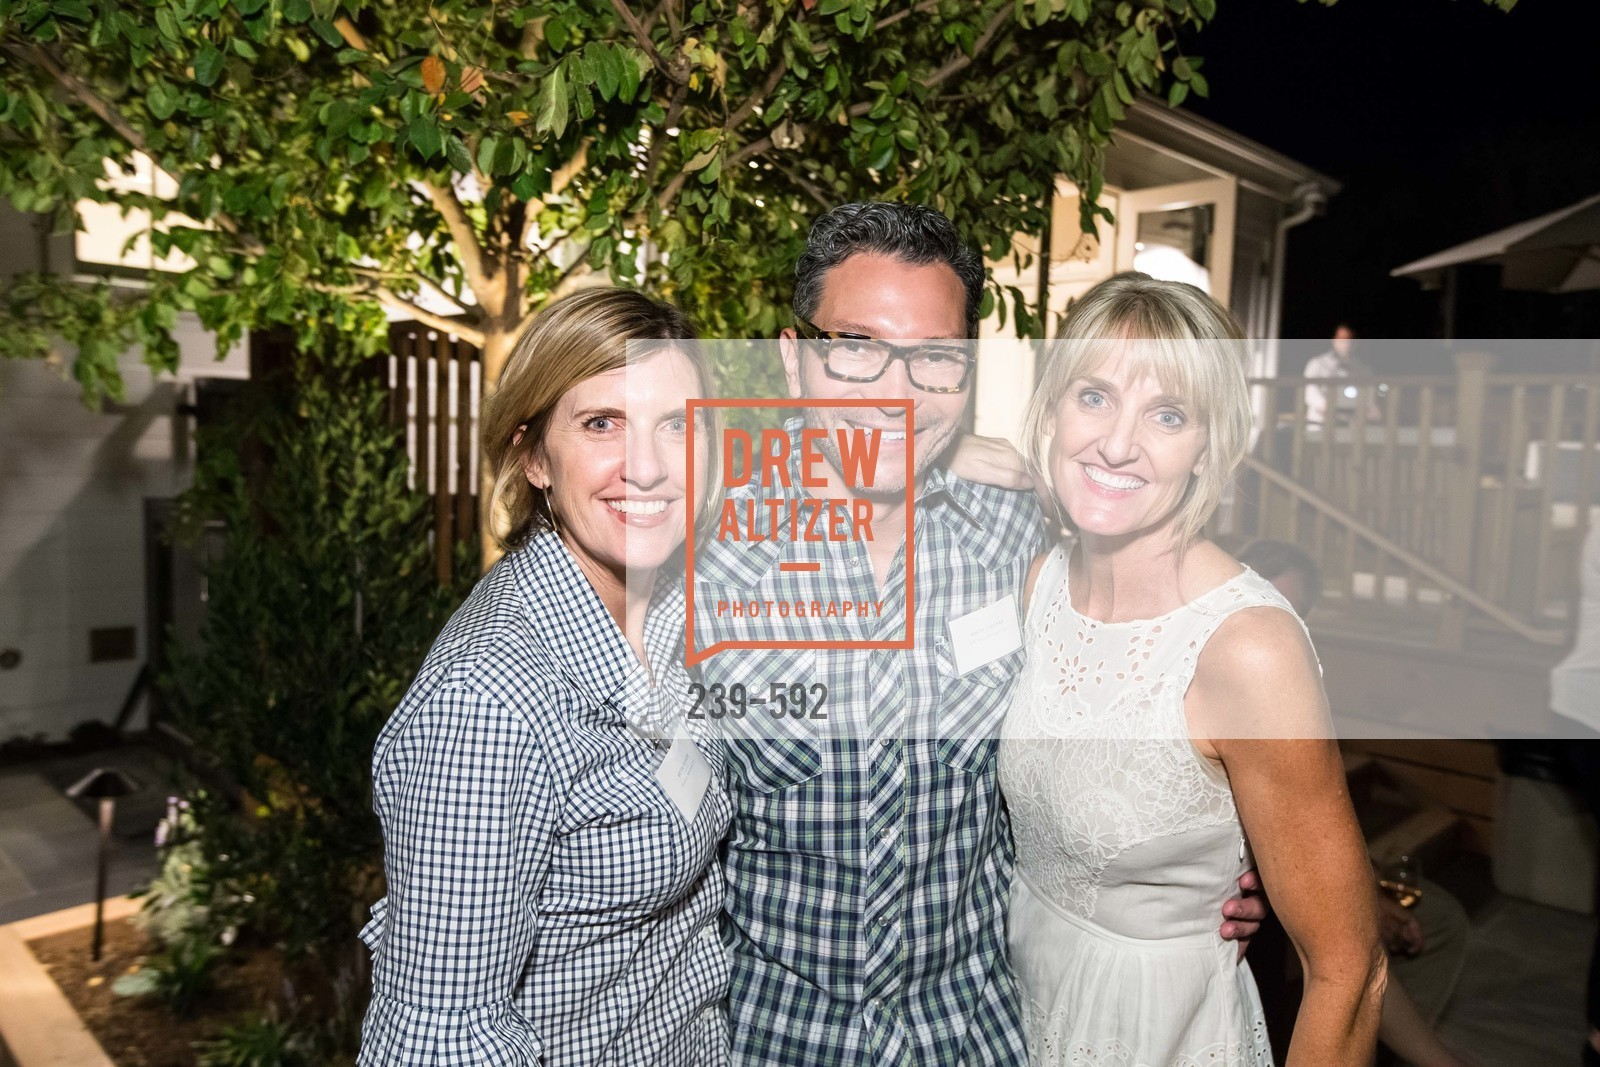 Beth Tudor, David Jimenez, Julie Neil, WILLIAMS-SONOMA Cochon BBQ Celebration, US, October 3rd, 2014,Drew Altizer, Drew Altizer Photography, full-service agency, private events, San Francisco photographer, photographer california